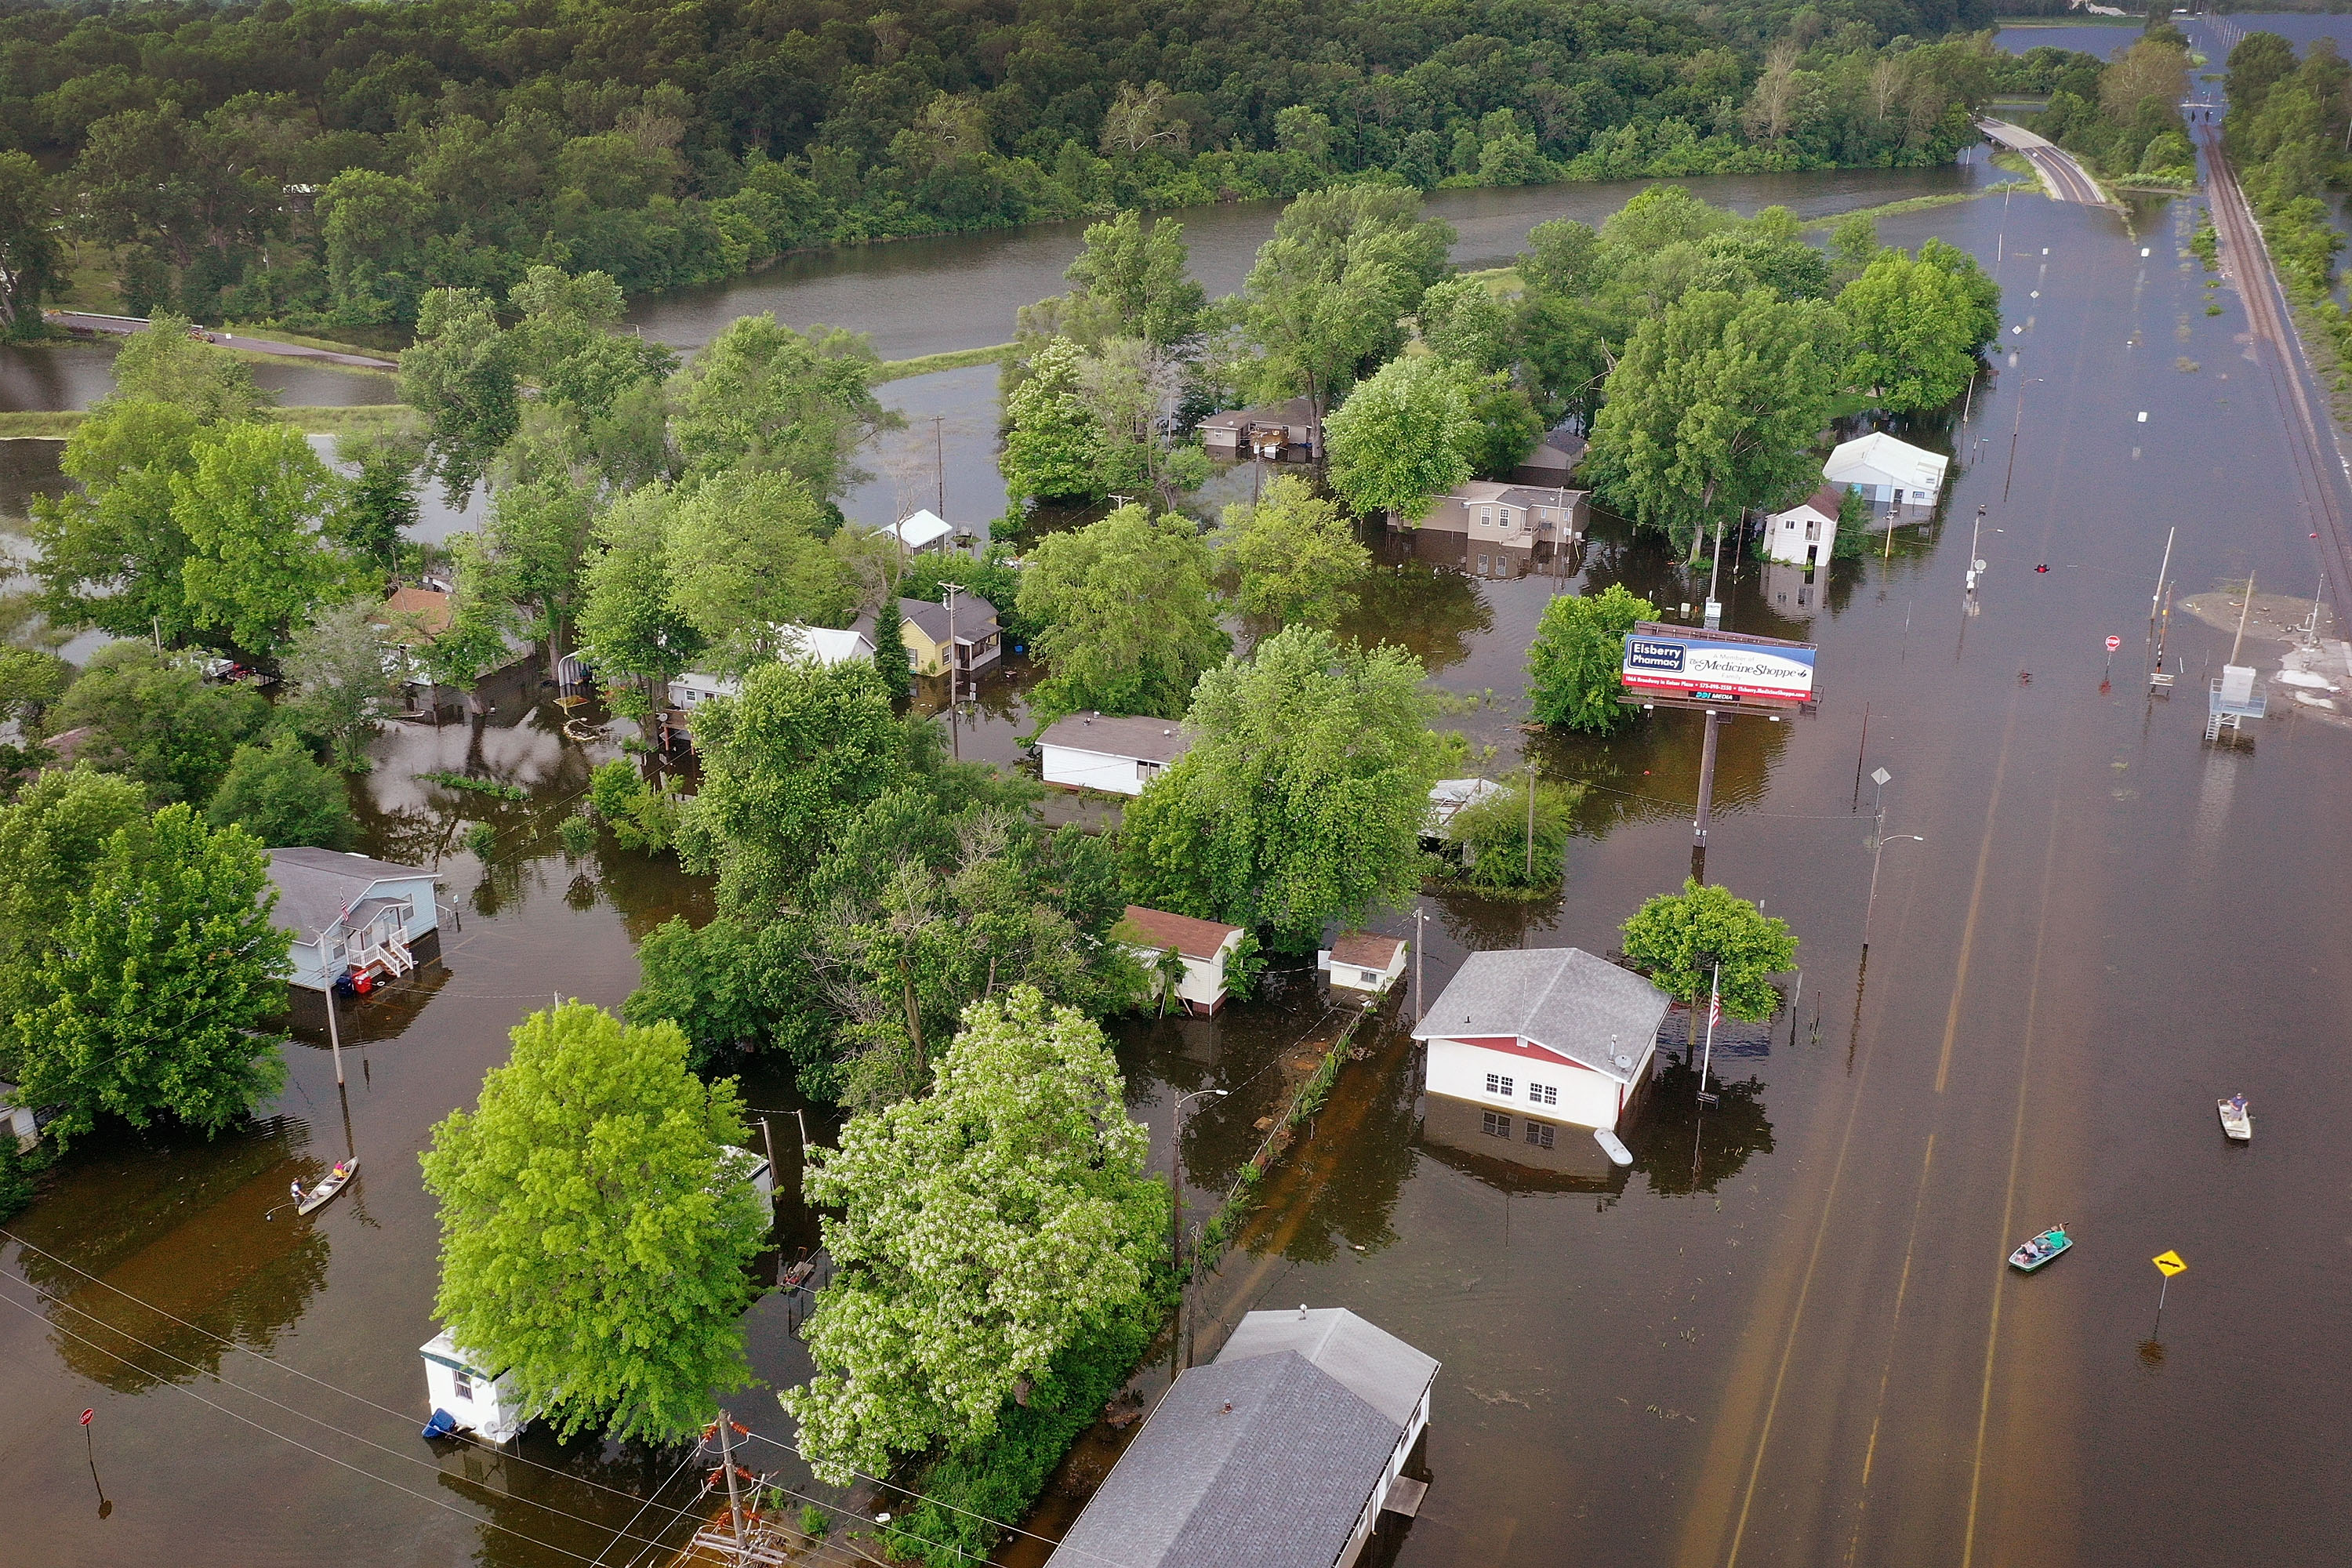 Floodwater from the Mississippi River has overtaken much of the town on June 1, 2019 in Foley, Missouri.